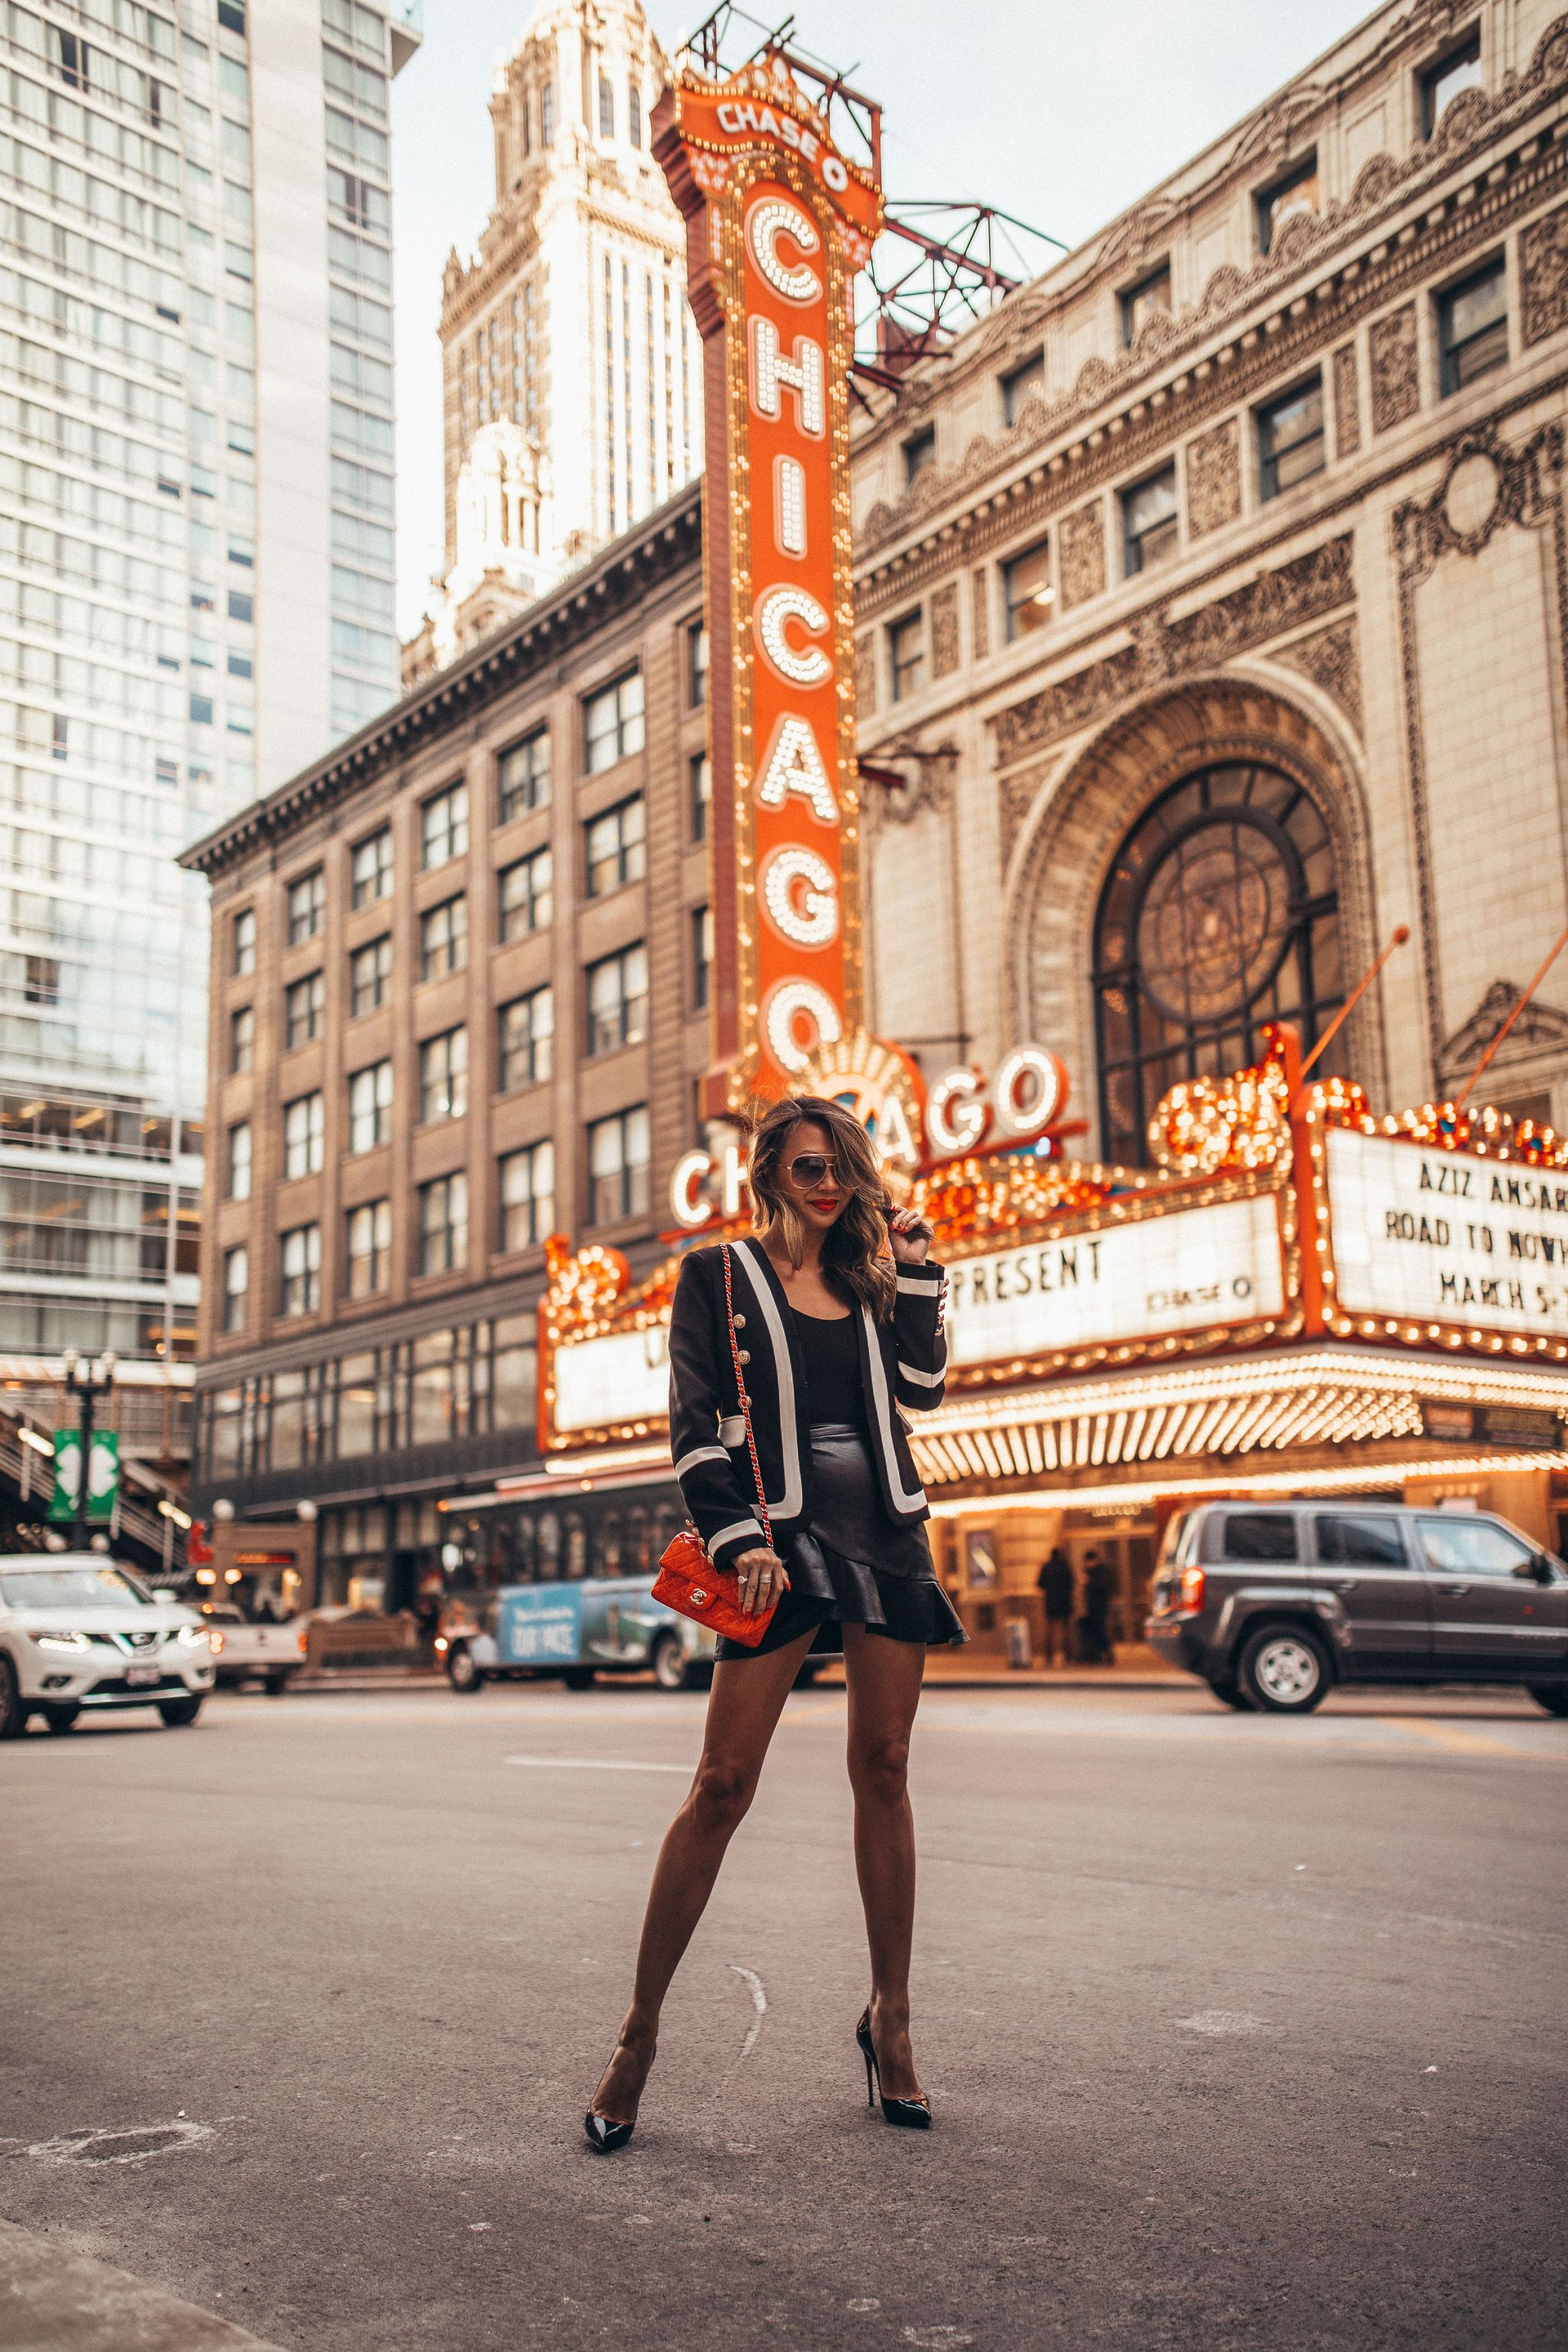 best places to take photos in chicago, chicago photography guide, best places for photography in chicago, chicago guide, chicago blogger, Jennifer Worman, chicago theatre